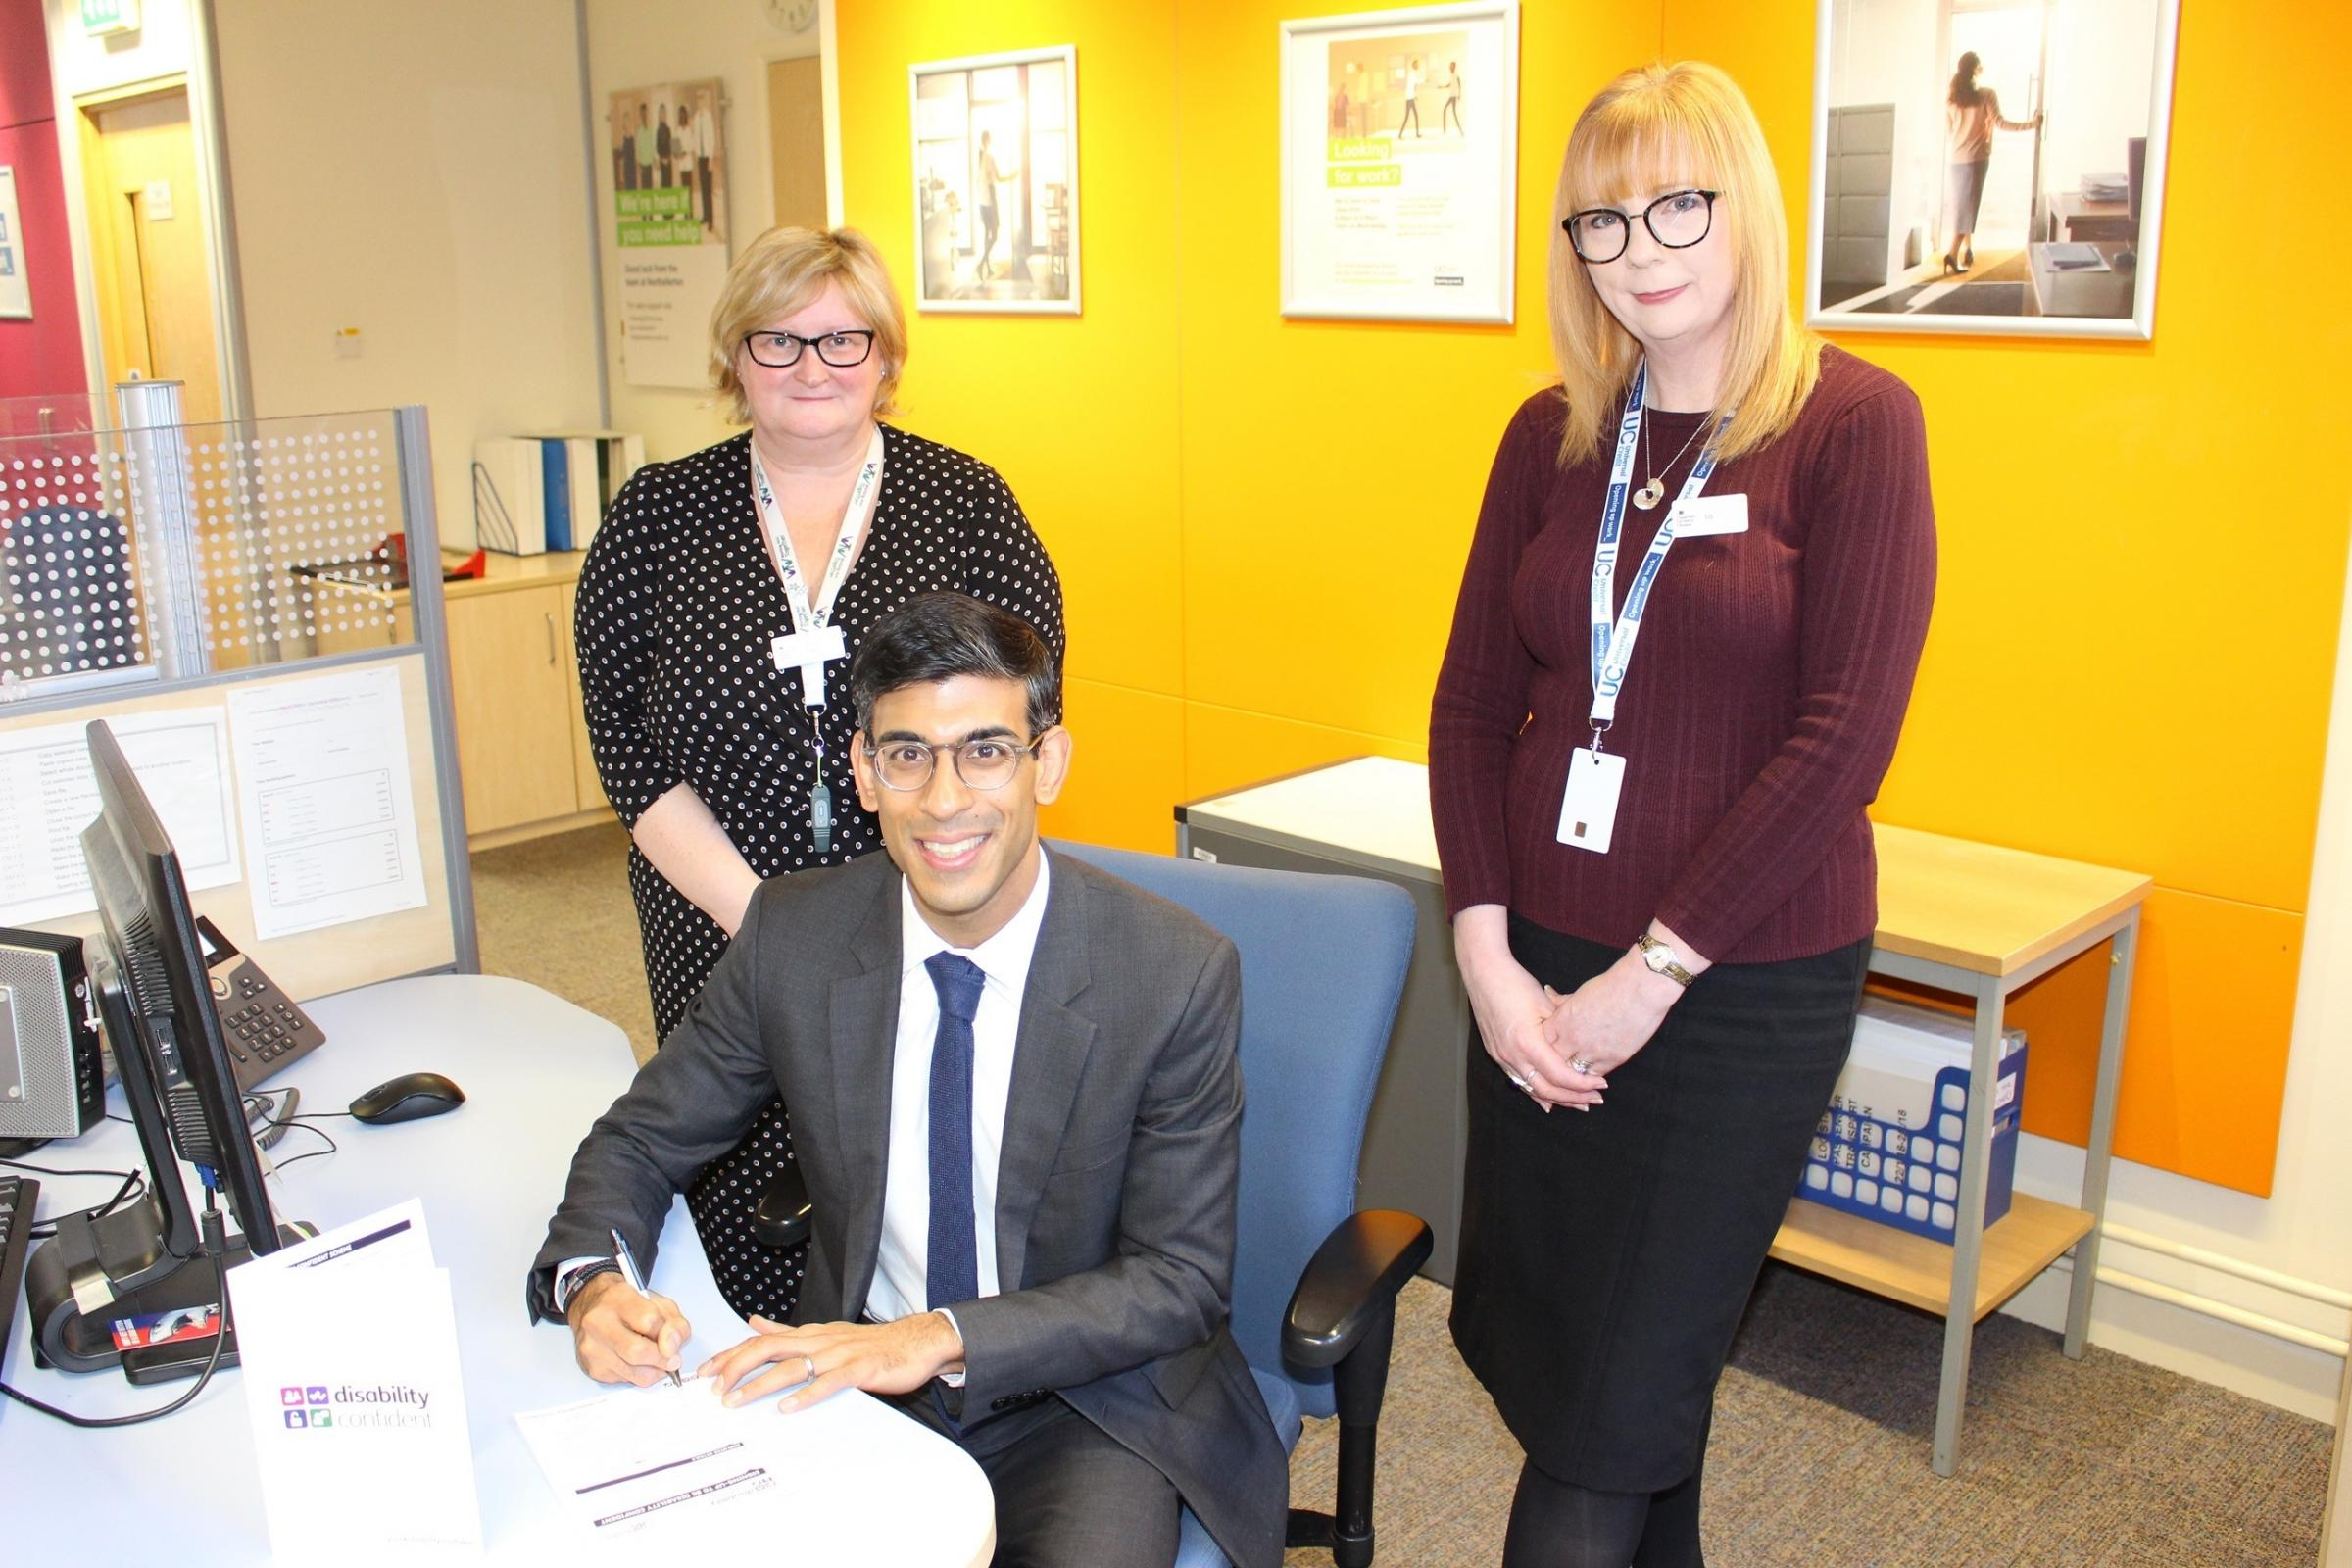 Rishi Sunak signs up as a Disability Confident Committed employer at Northallerton Jobcentre with Jobcentre Manager Liz Sainsbury, right, and Julia Priestnall, Employment and Partnership Manager, Northallerton and Richmond